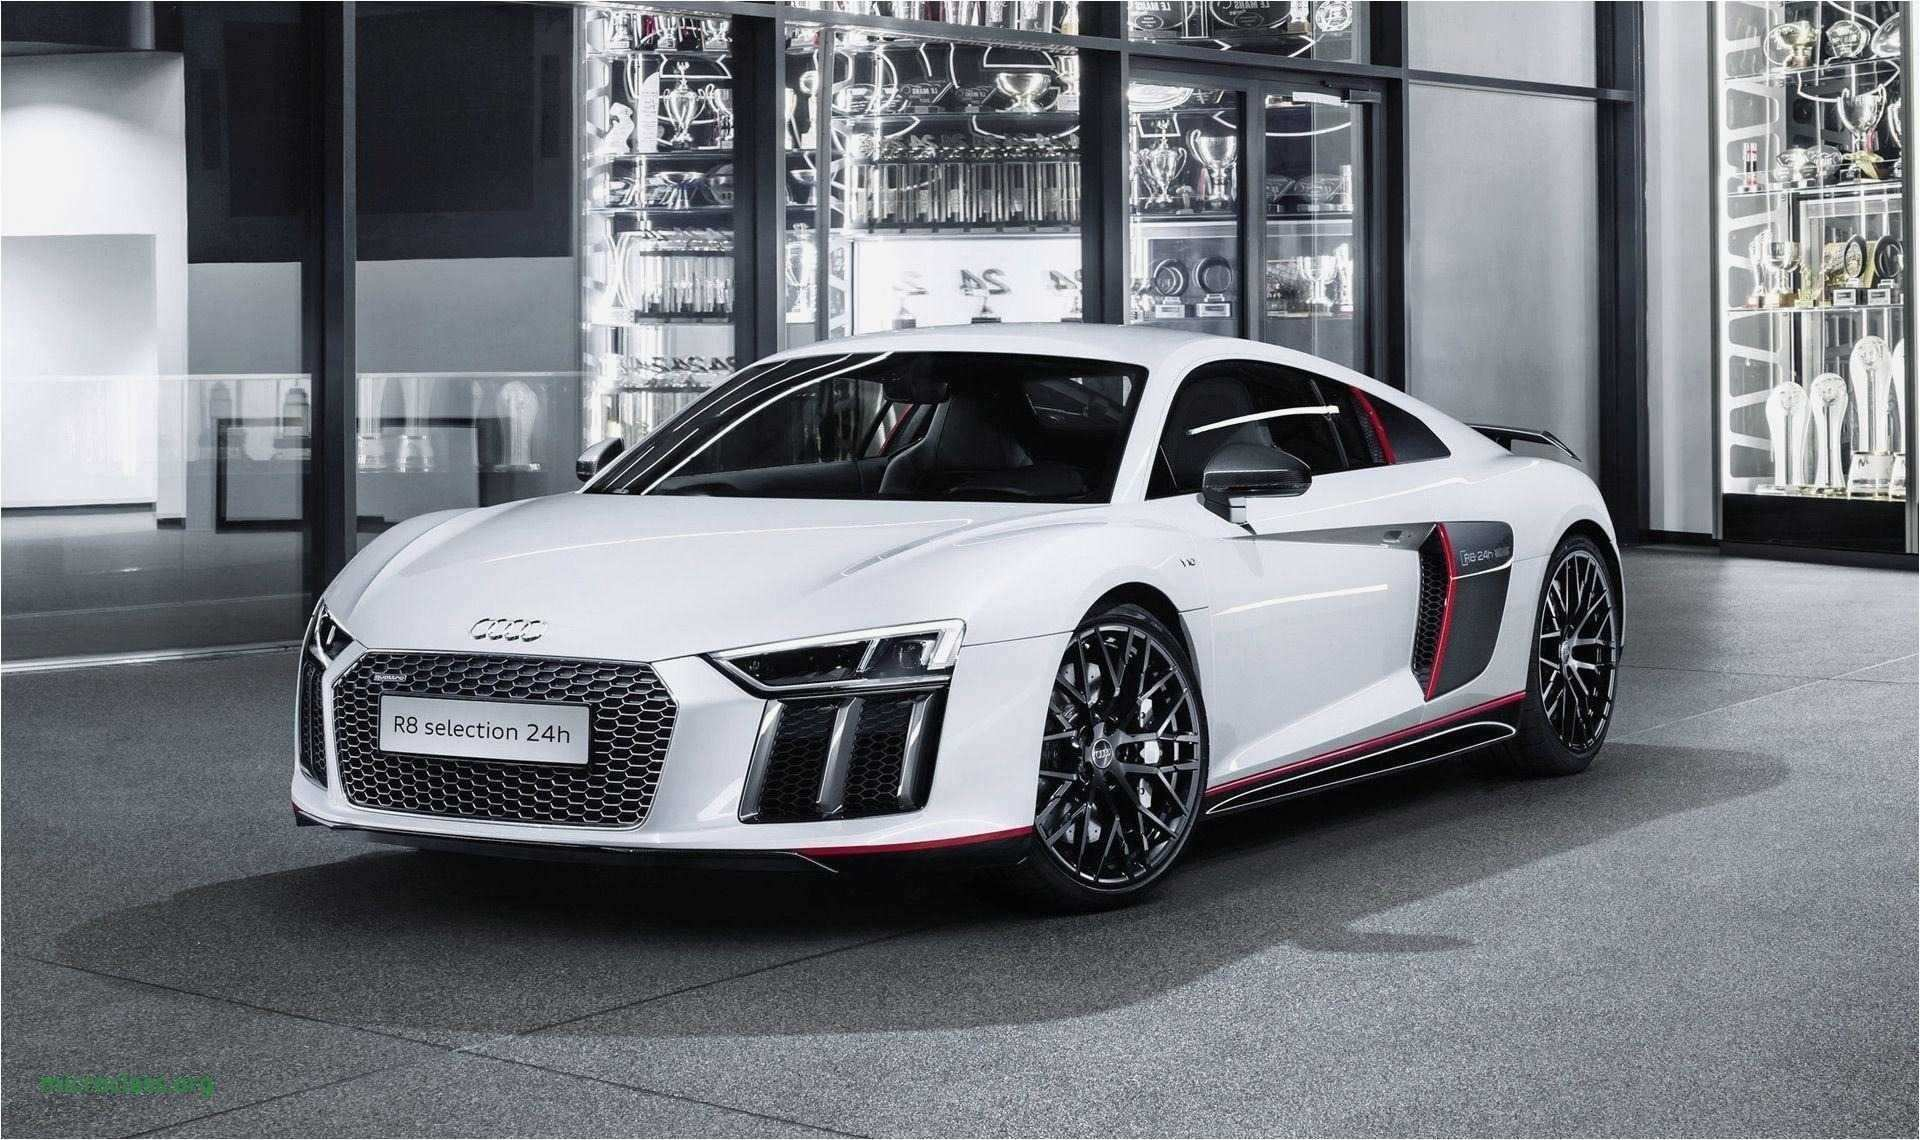 17 New 2020 Audi R8 LMXs Price by 2020 Audi R8 LMXs